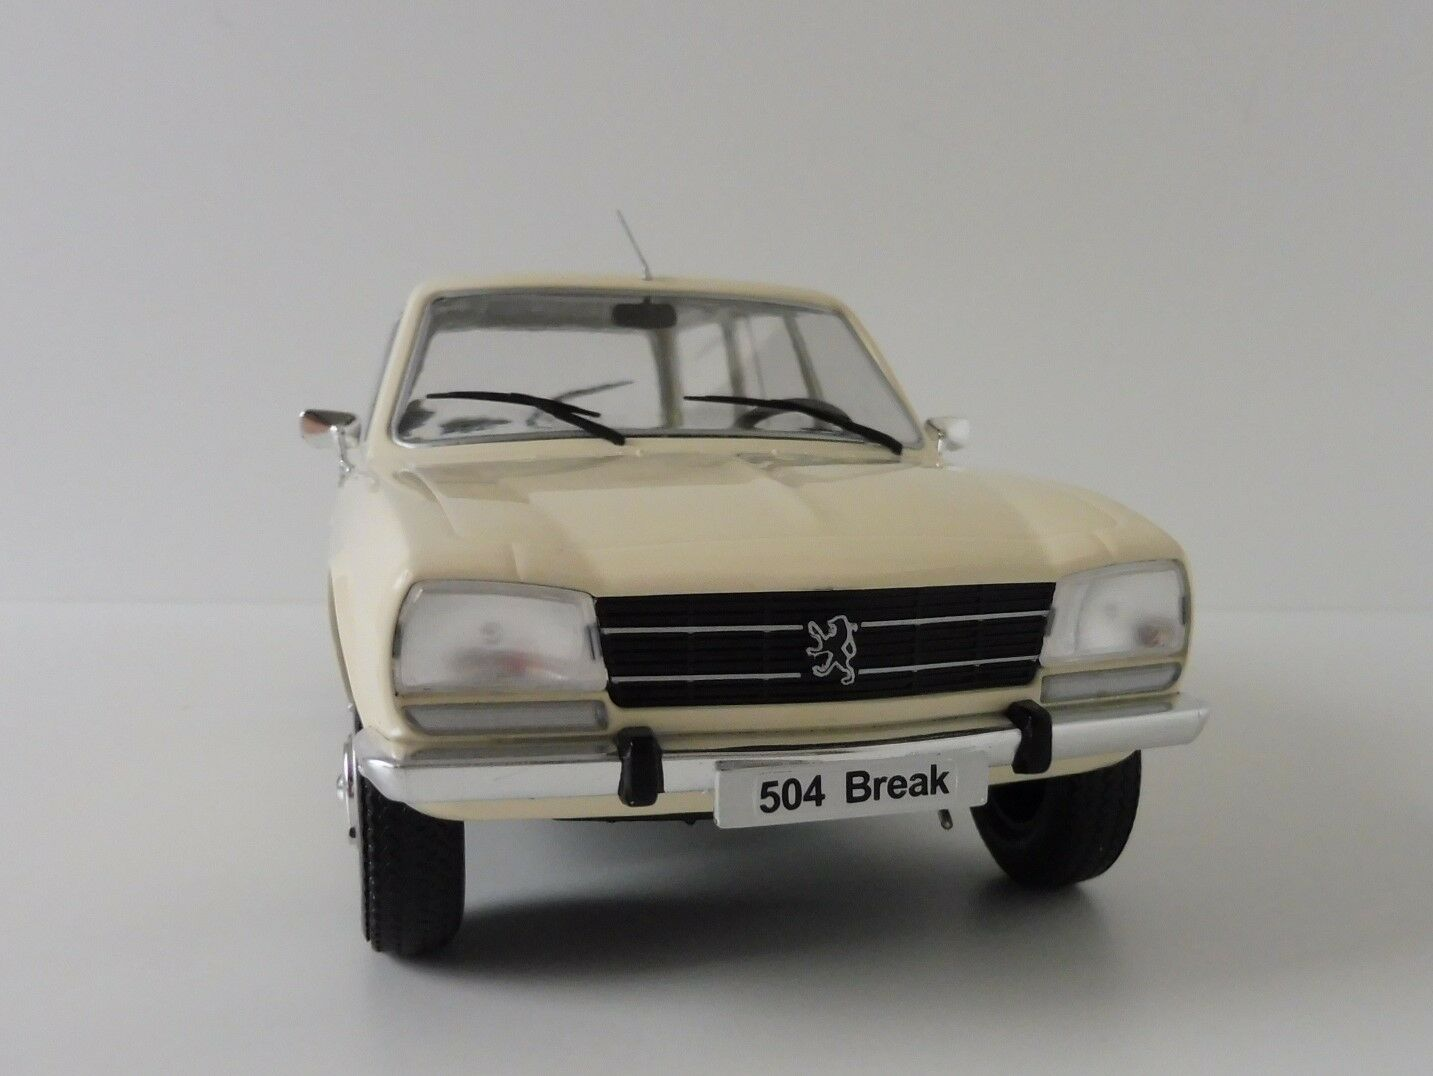 PEUGEOT 504 Break 1976 1 18 MODELCAR group mcg18035 STATION WAGON Cream